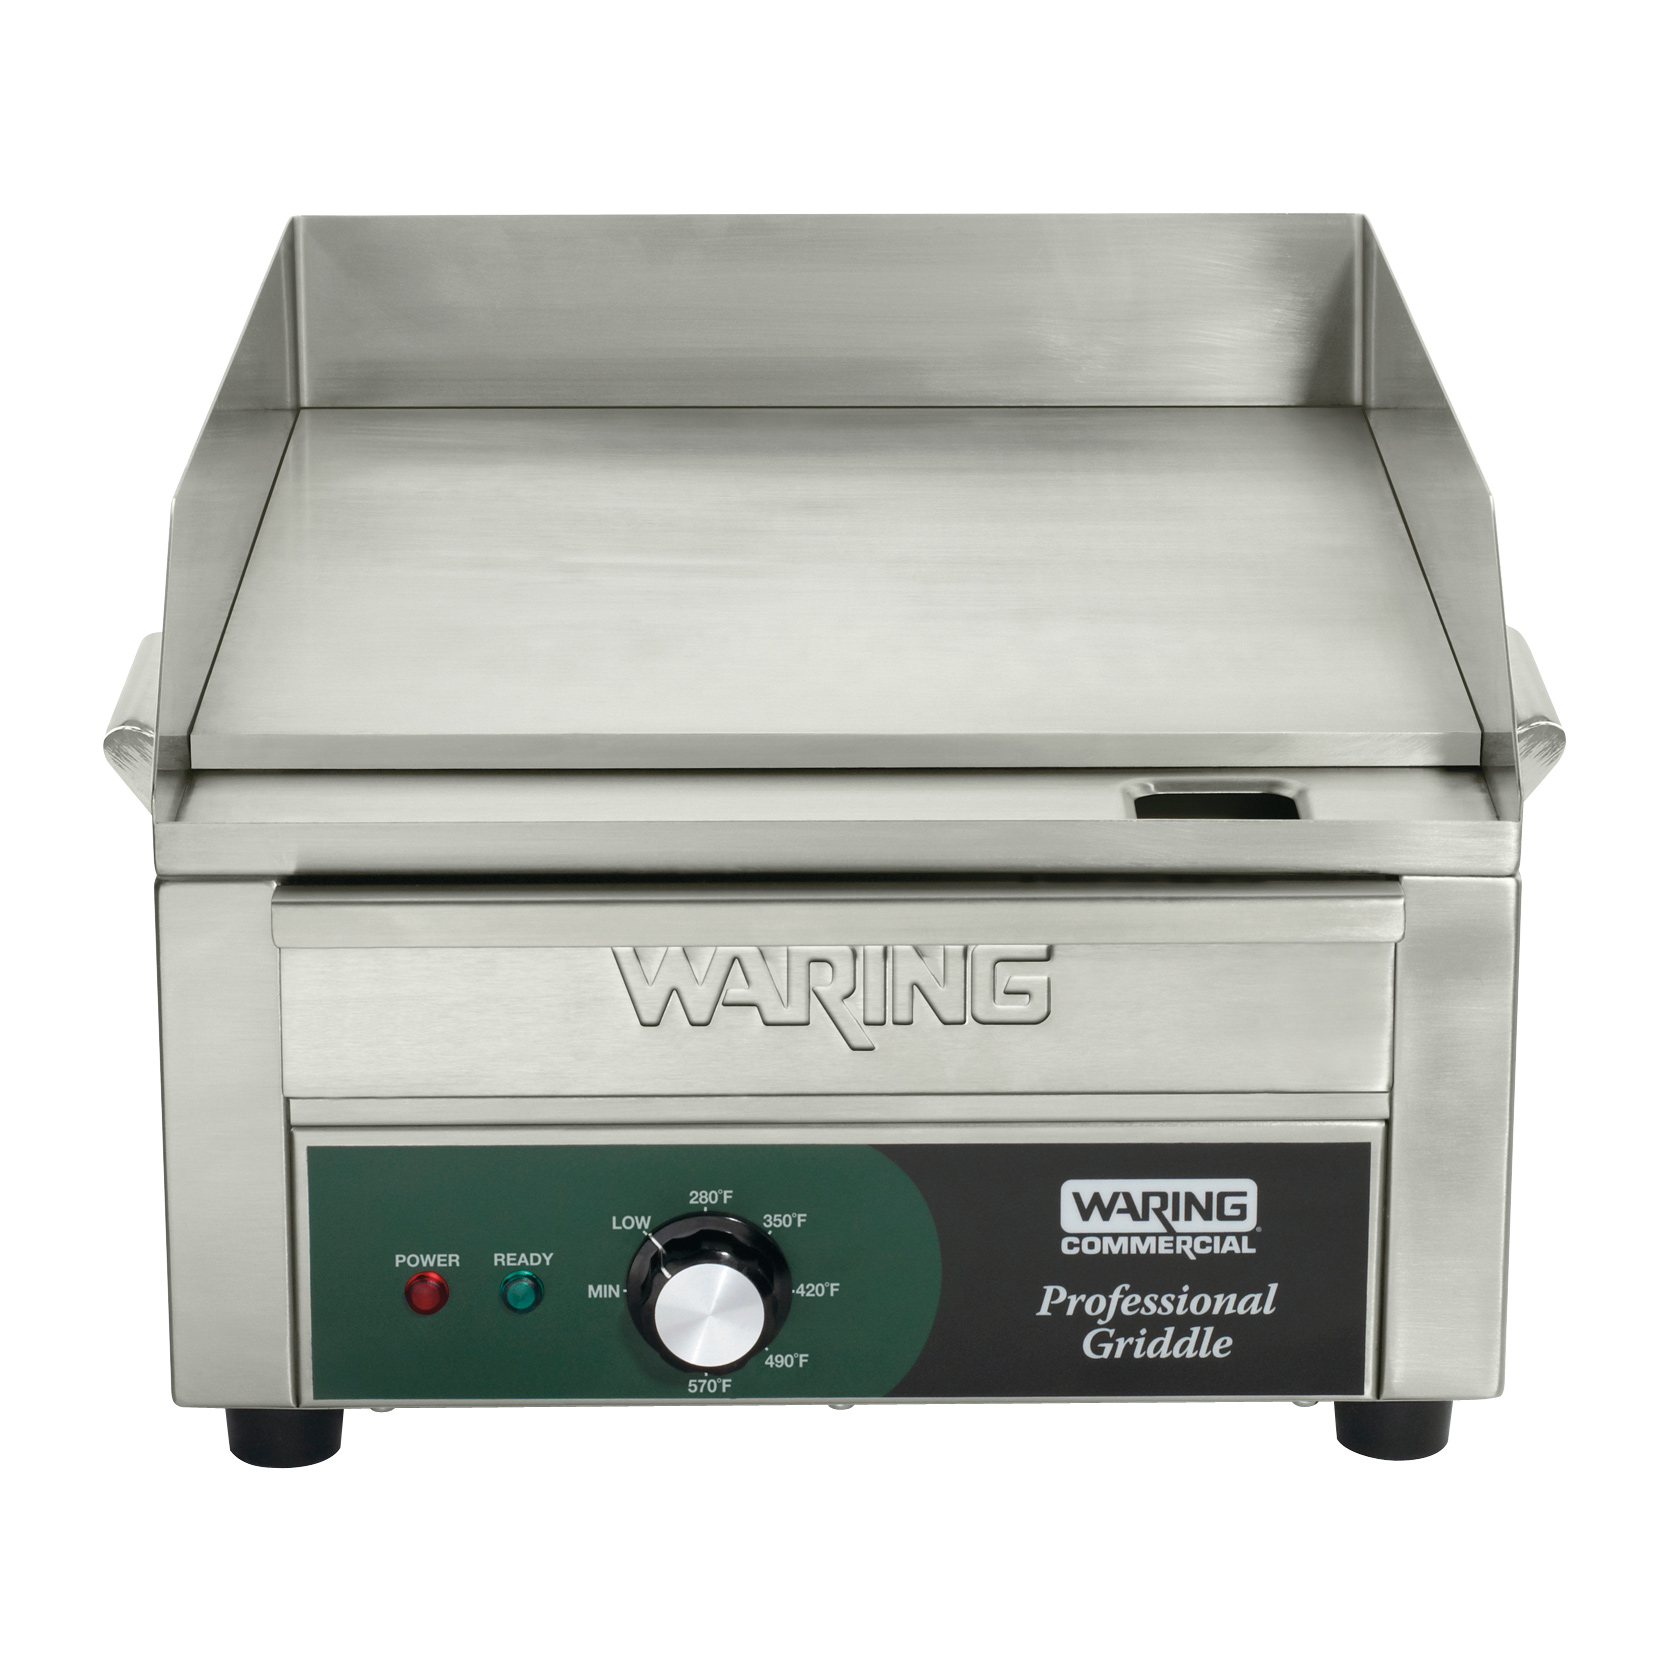 Waring WGR140X griddle, electric, countertop